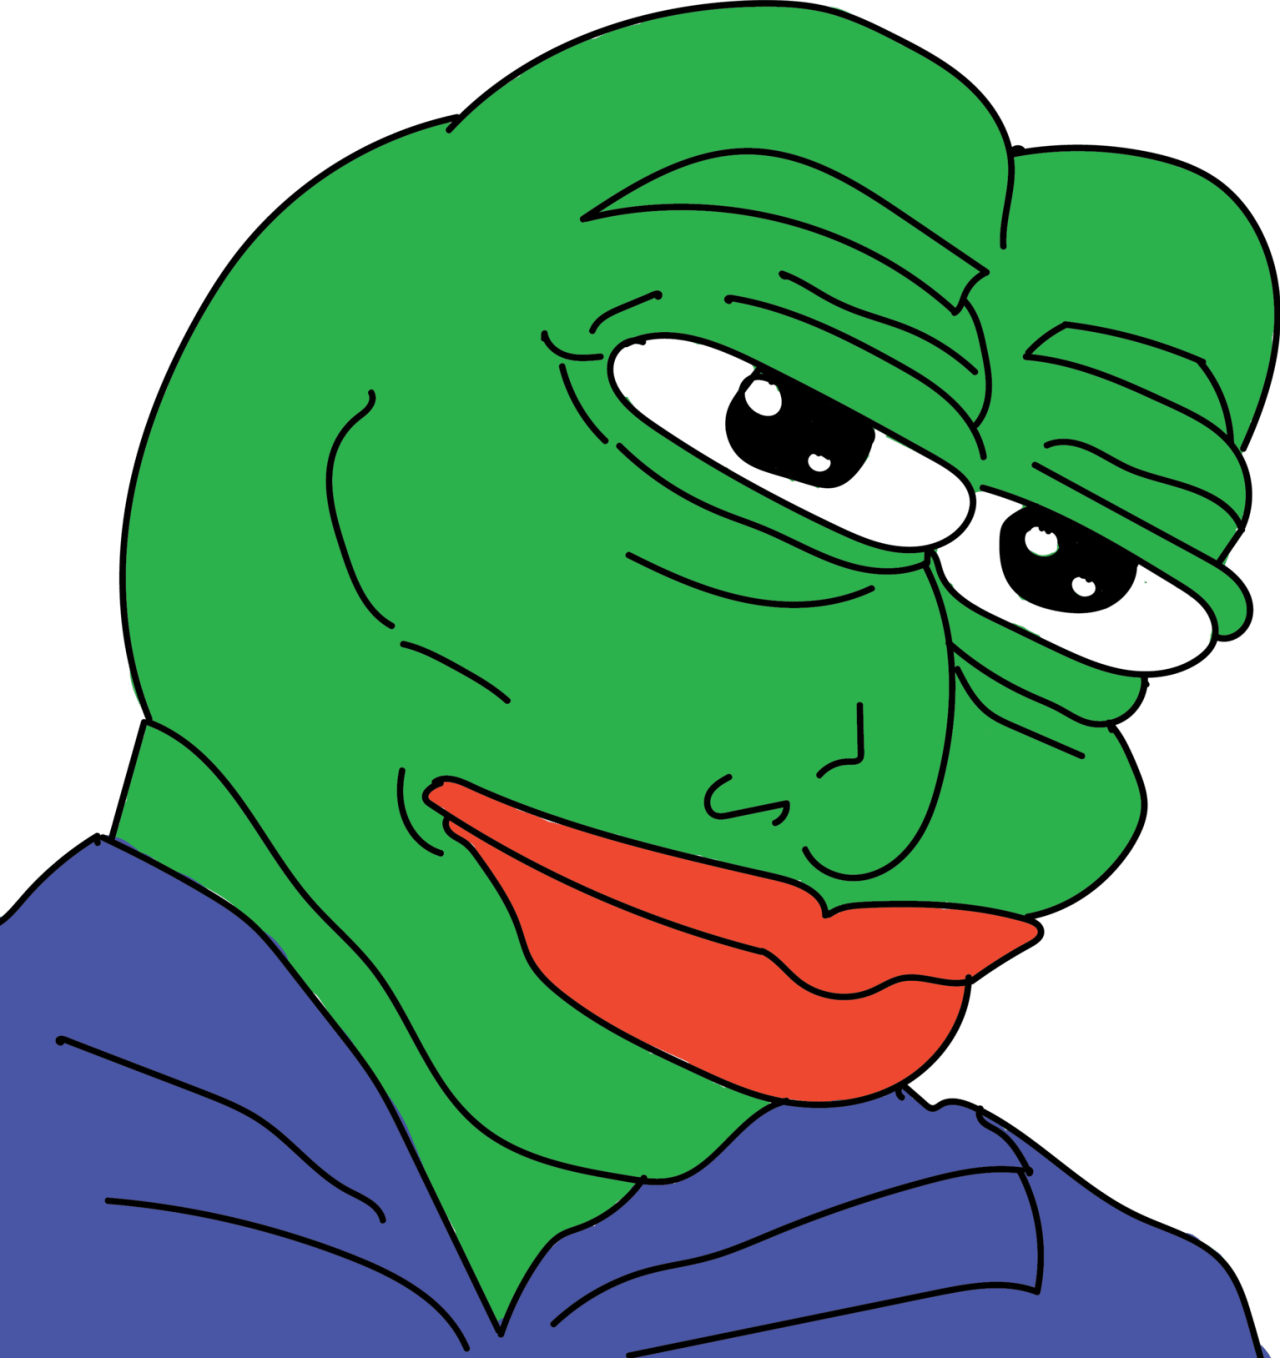 Pepe frog sad png. Handsome transparent stickpng